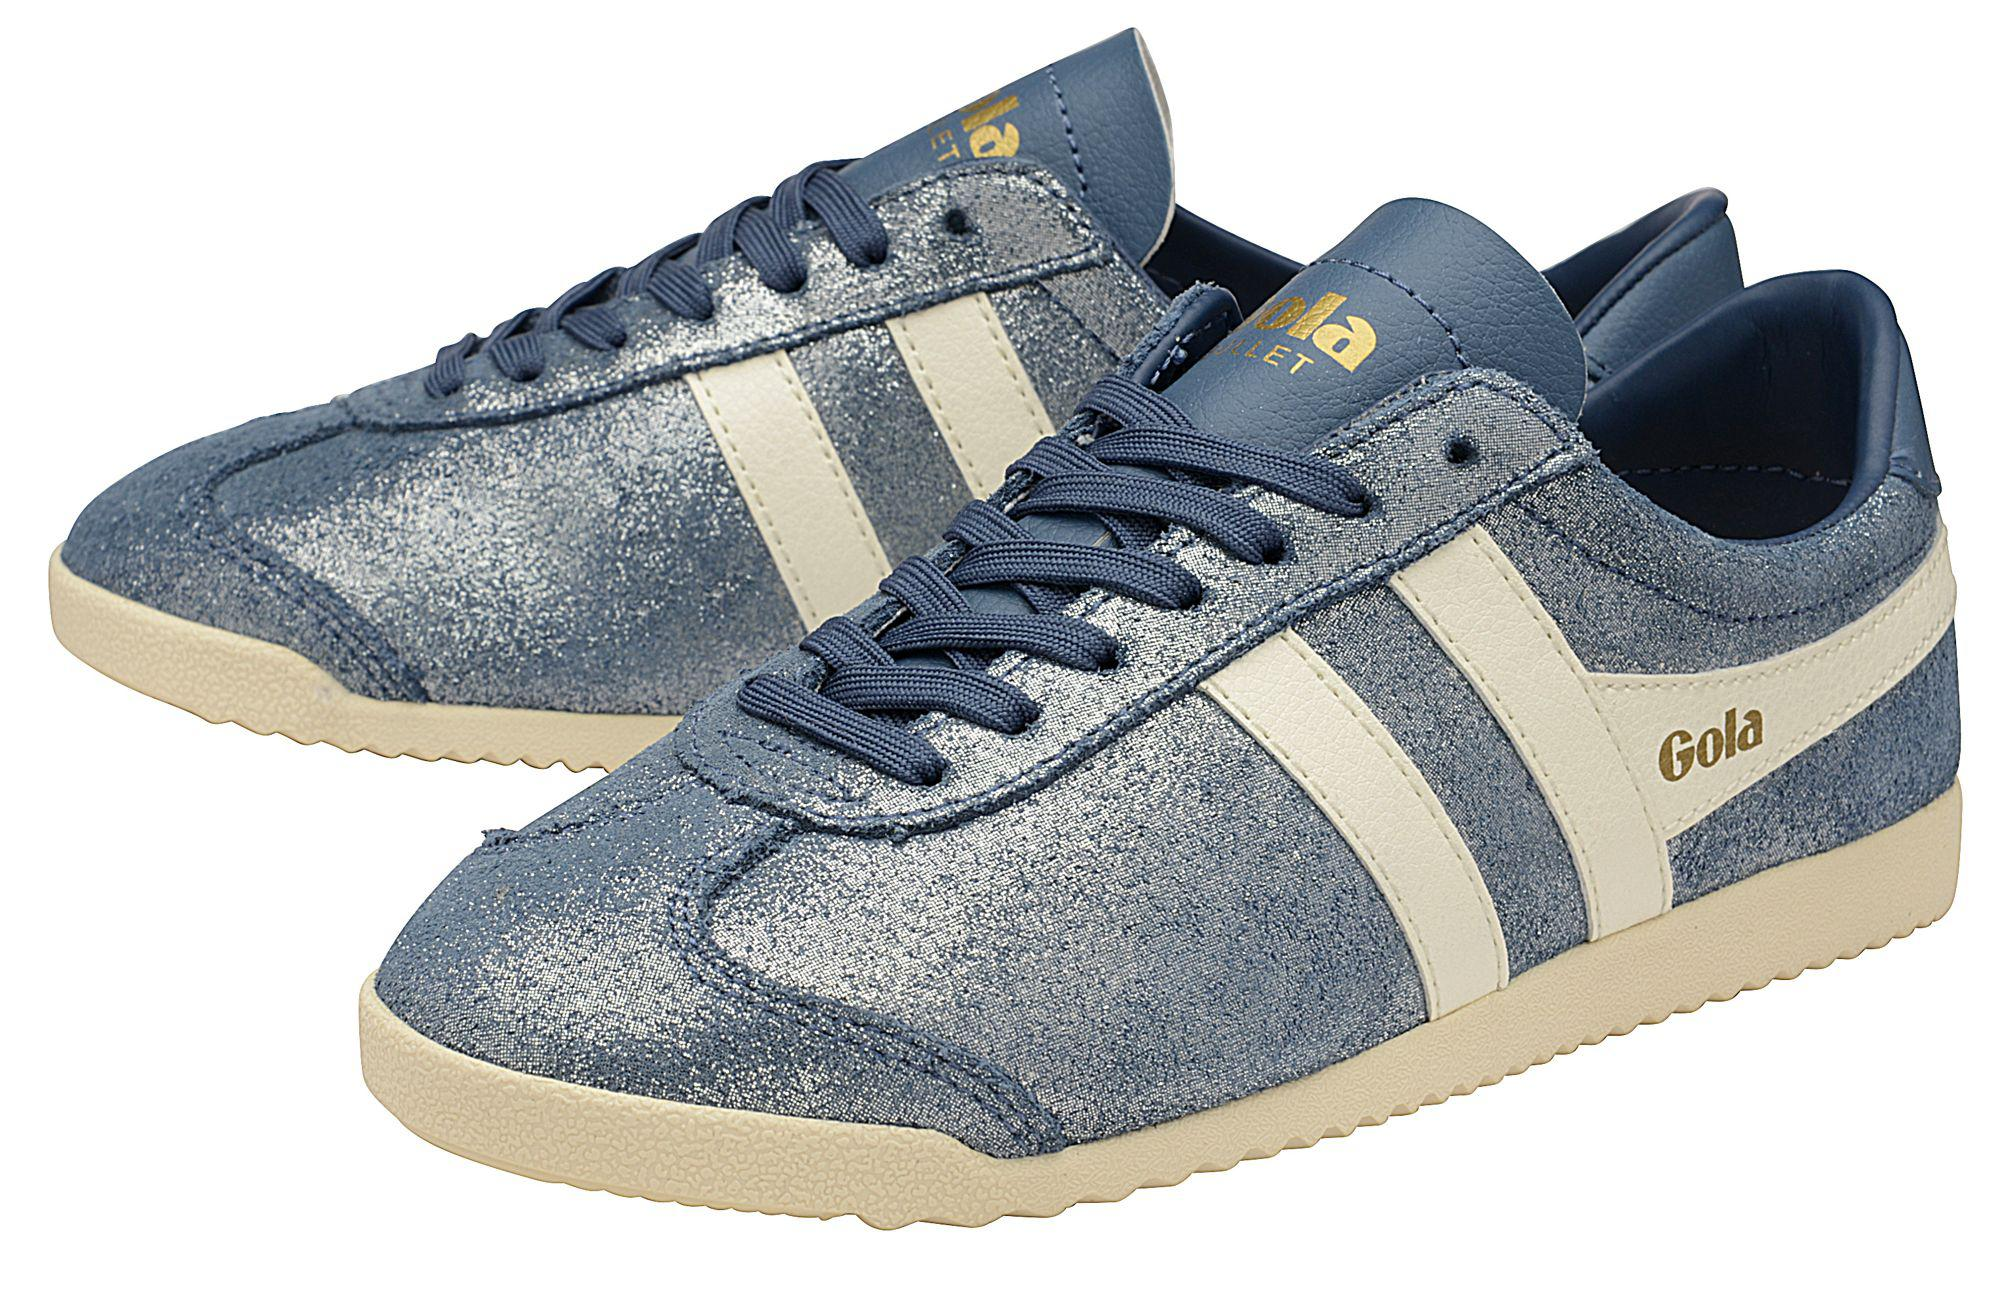 Baltic 'Bullet Glitter' ladies lace up trainers low cost sale online clearance Manchester 3AjLJ